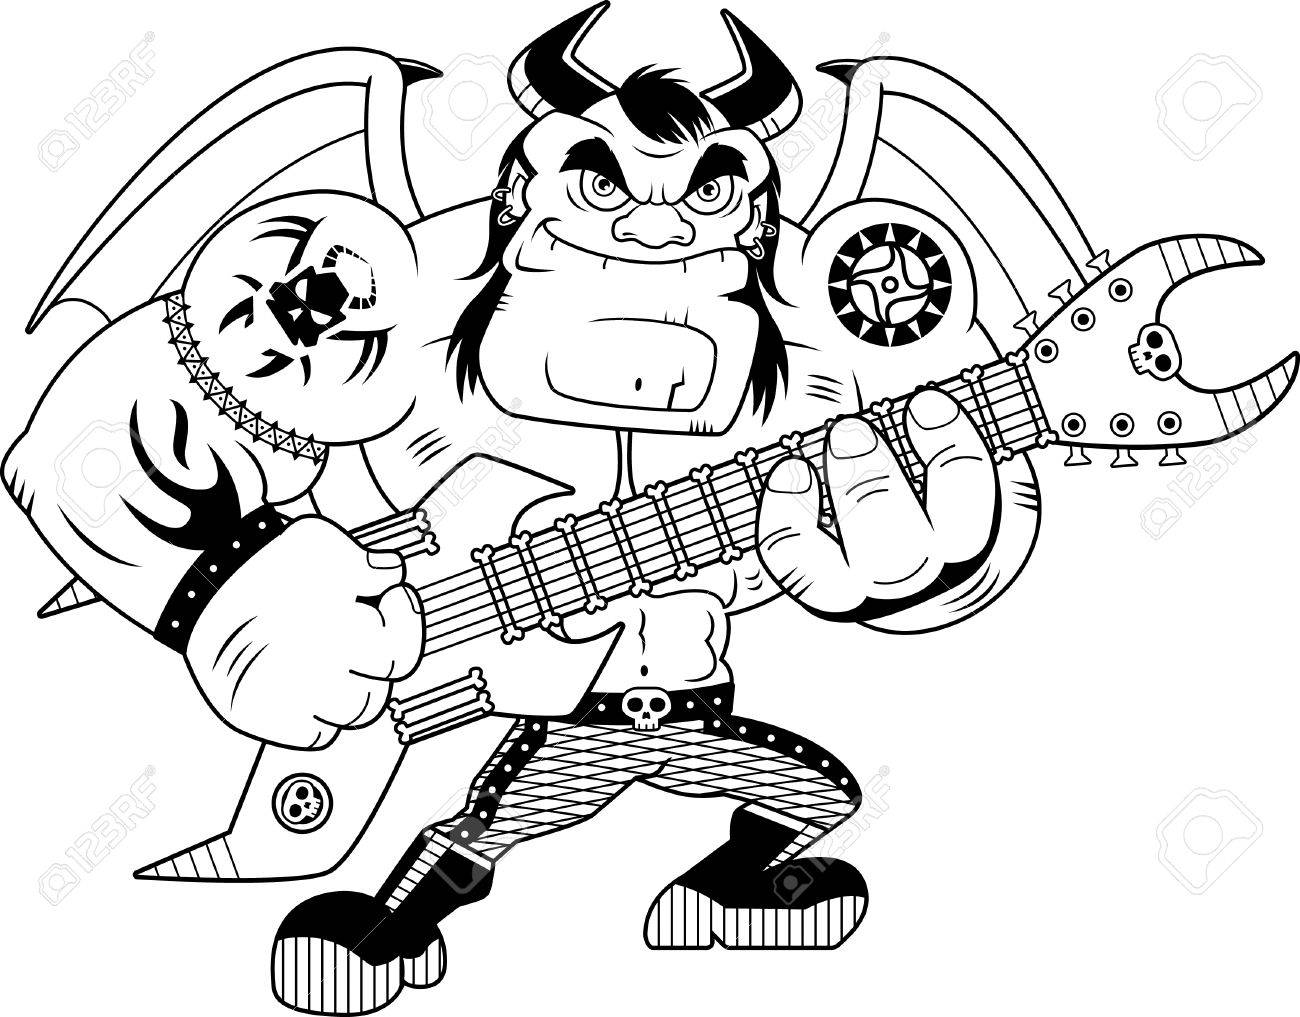 A cartoon illustration of a heavy metal demon playing guitar.